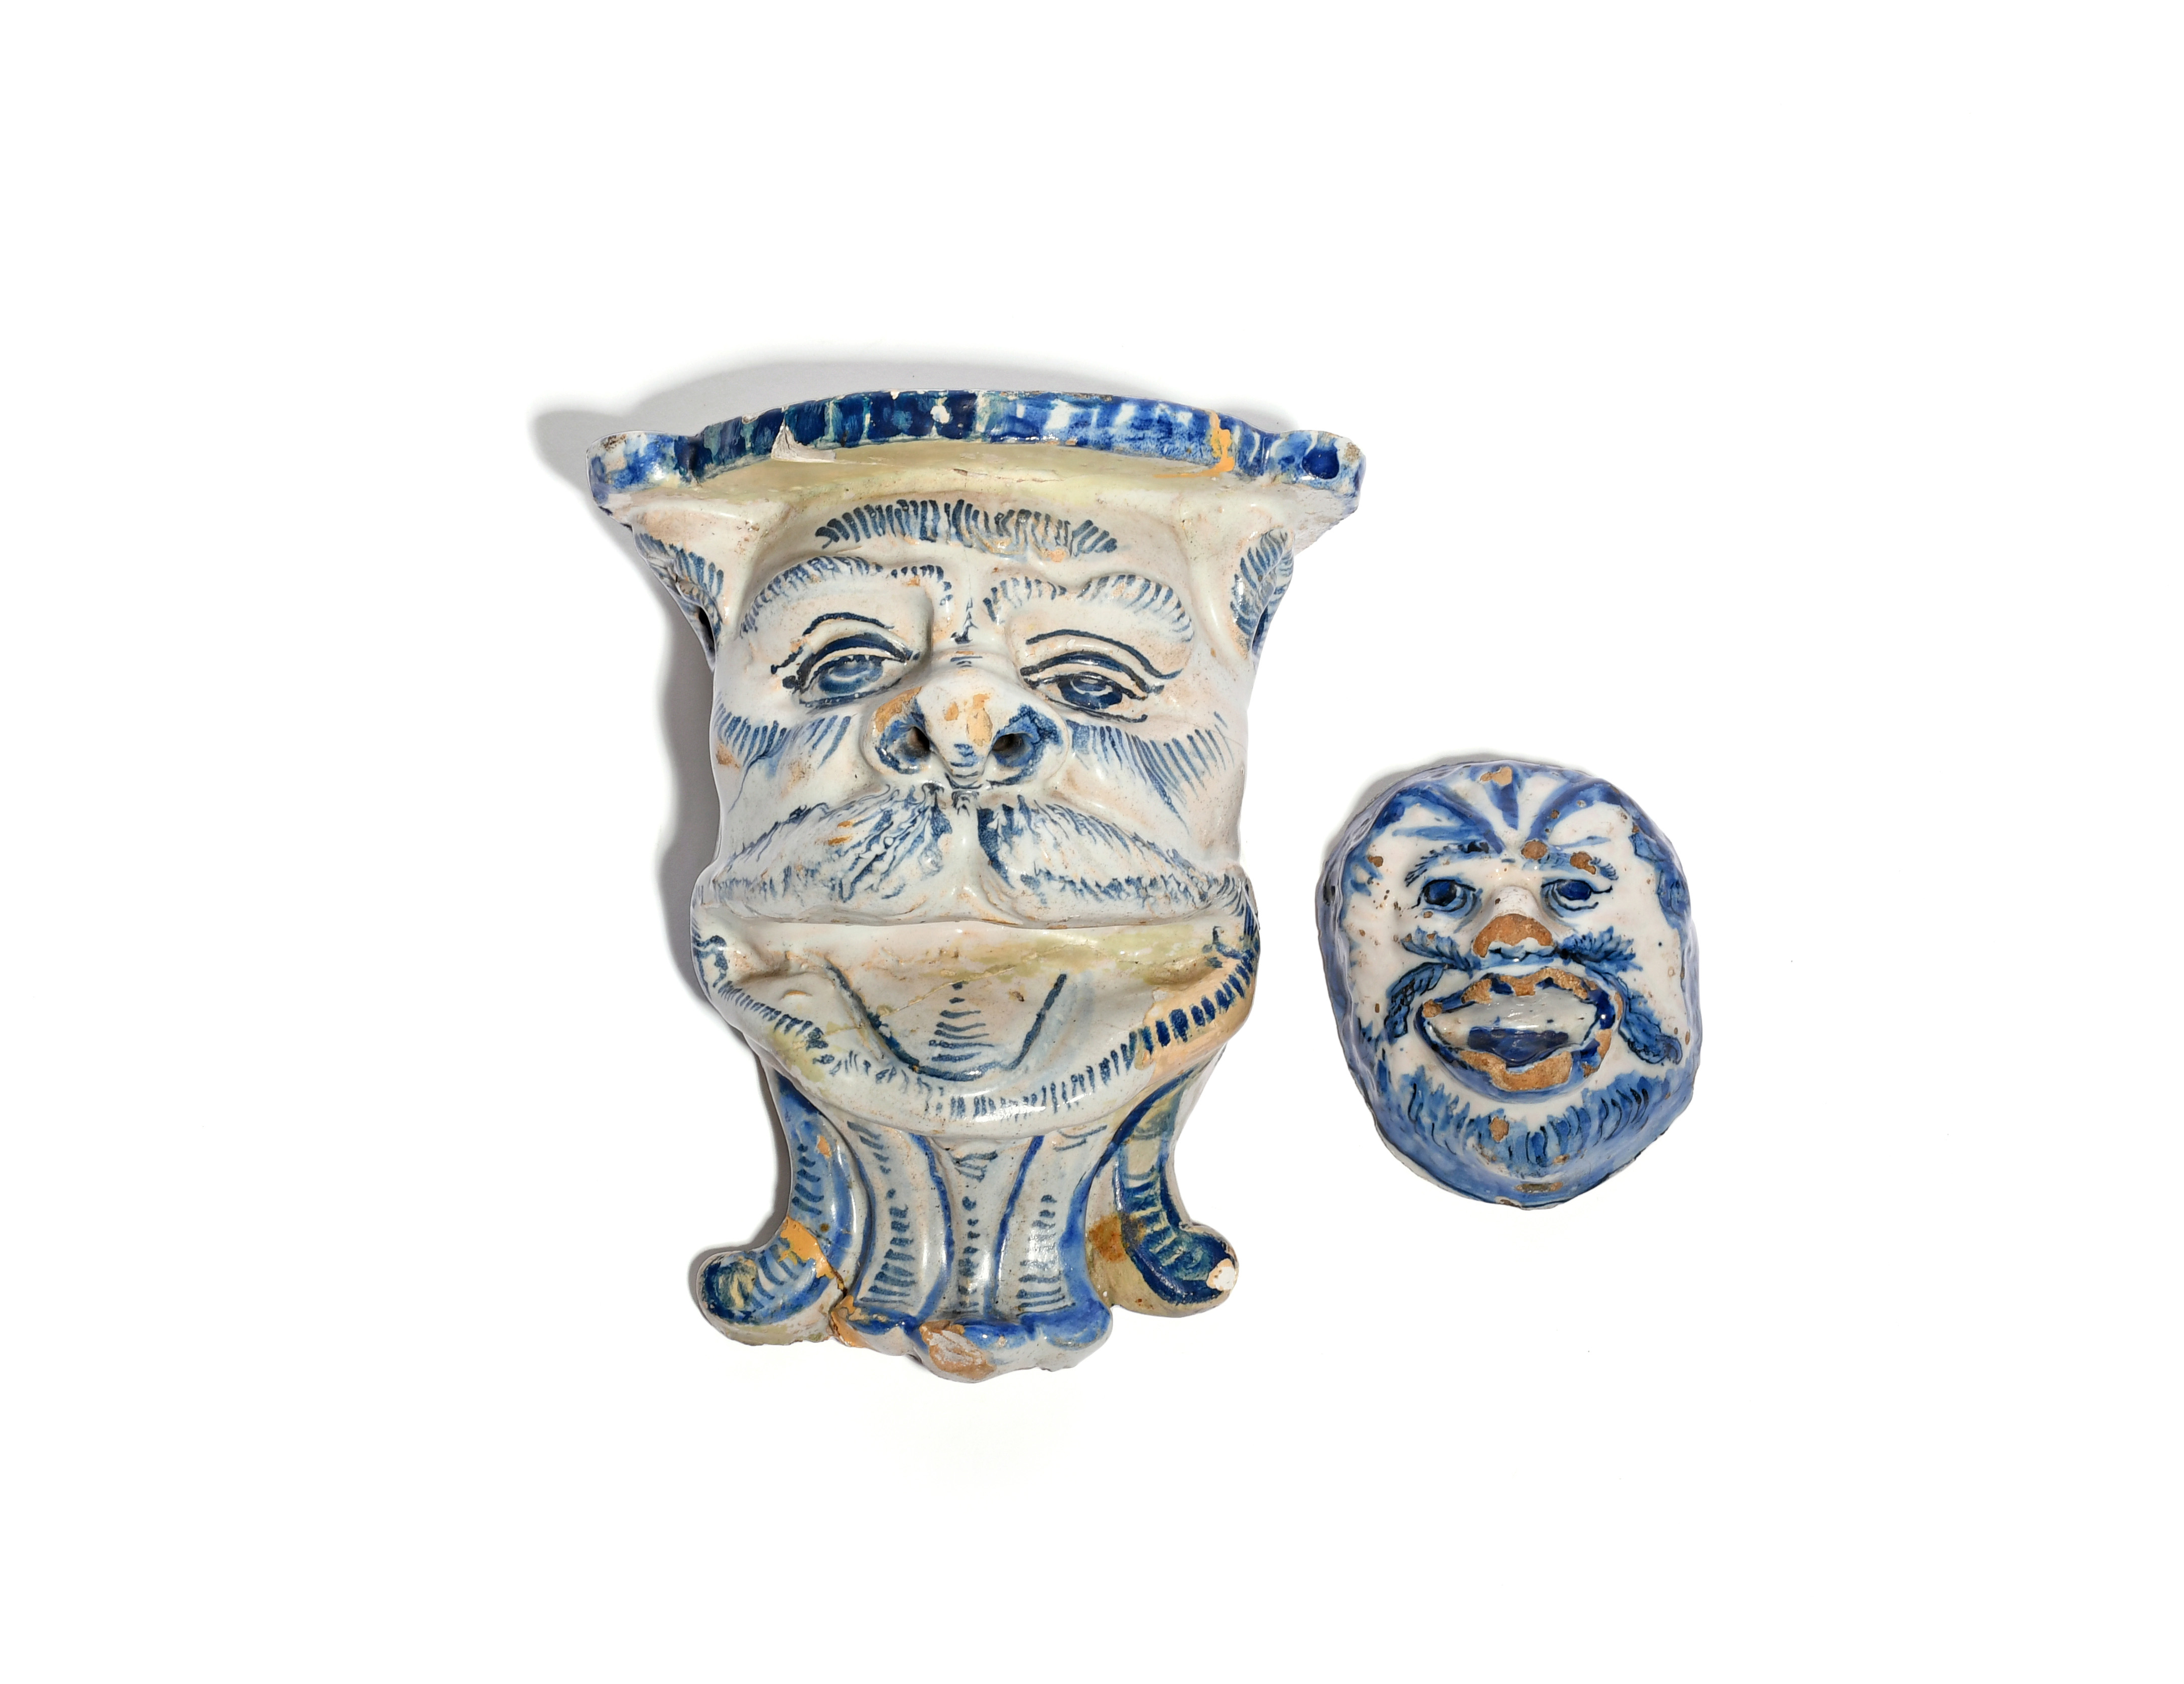 A Delft wall shelf 1st half 18th century, modelled as the face of mythical beast beneath a flattened